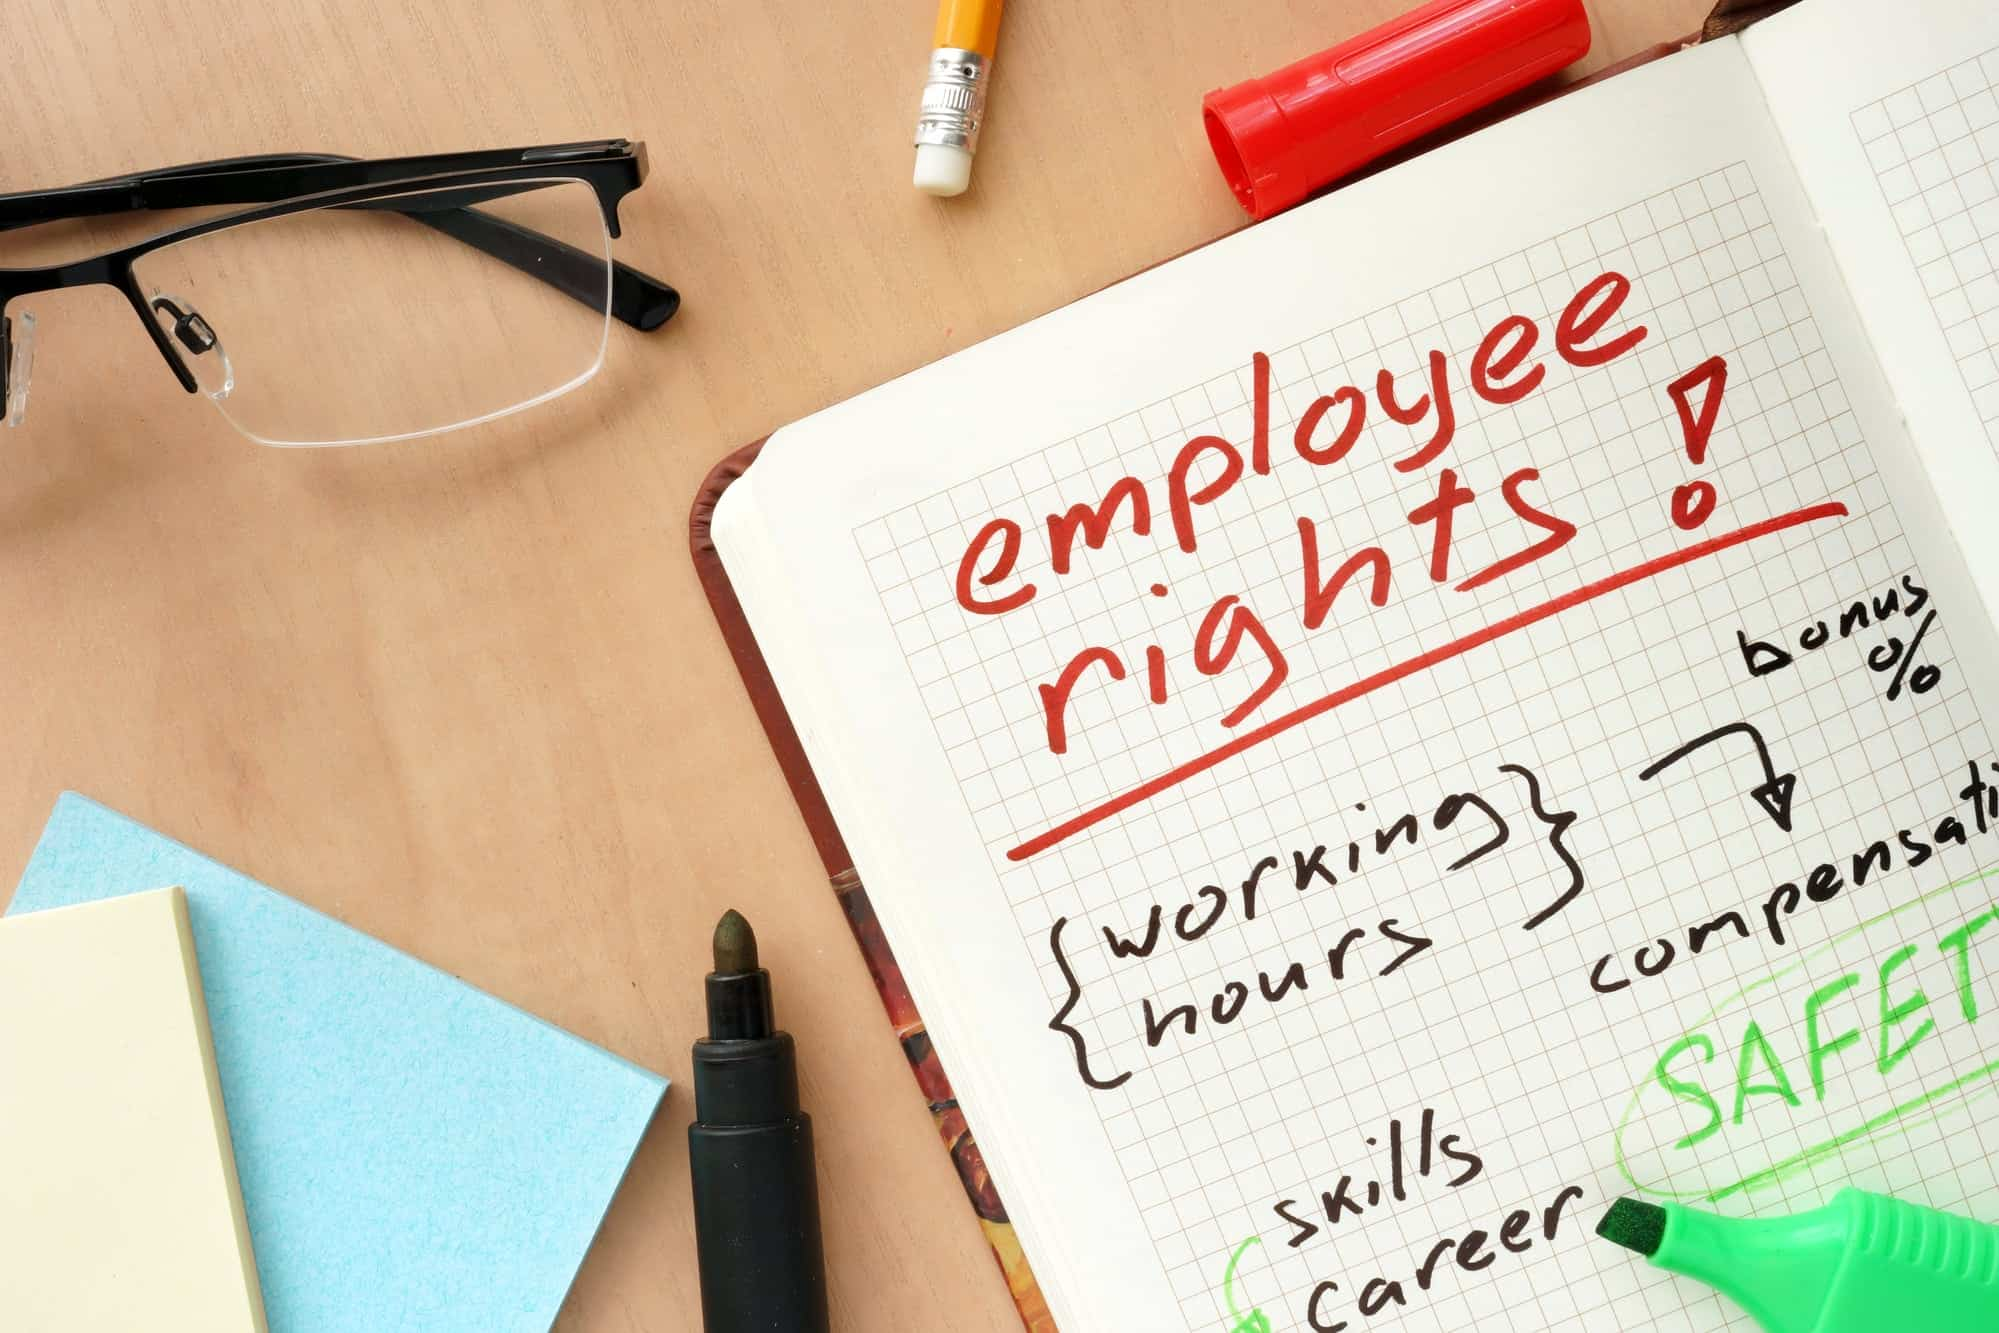 notepad-with-words-employee-rights-concept